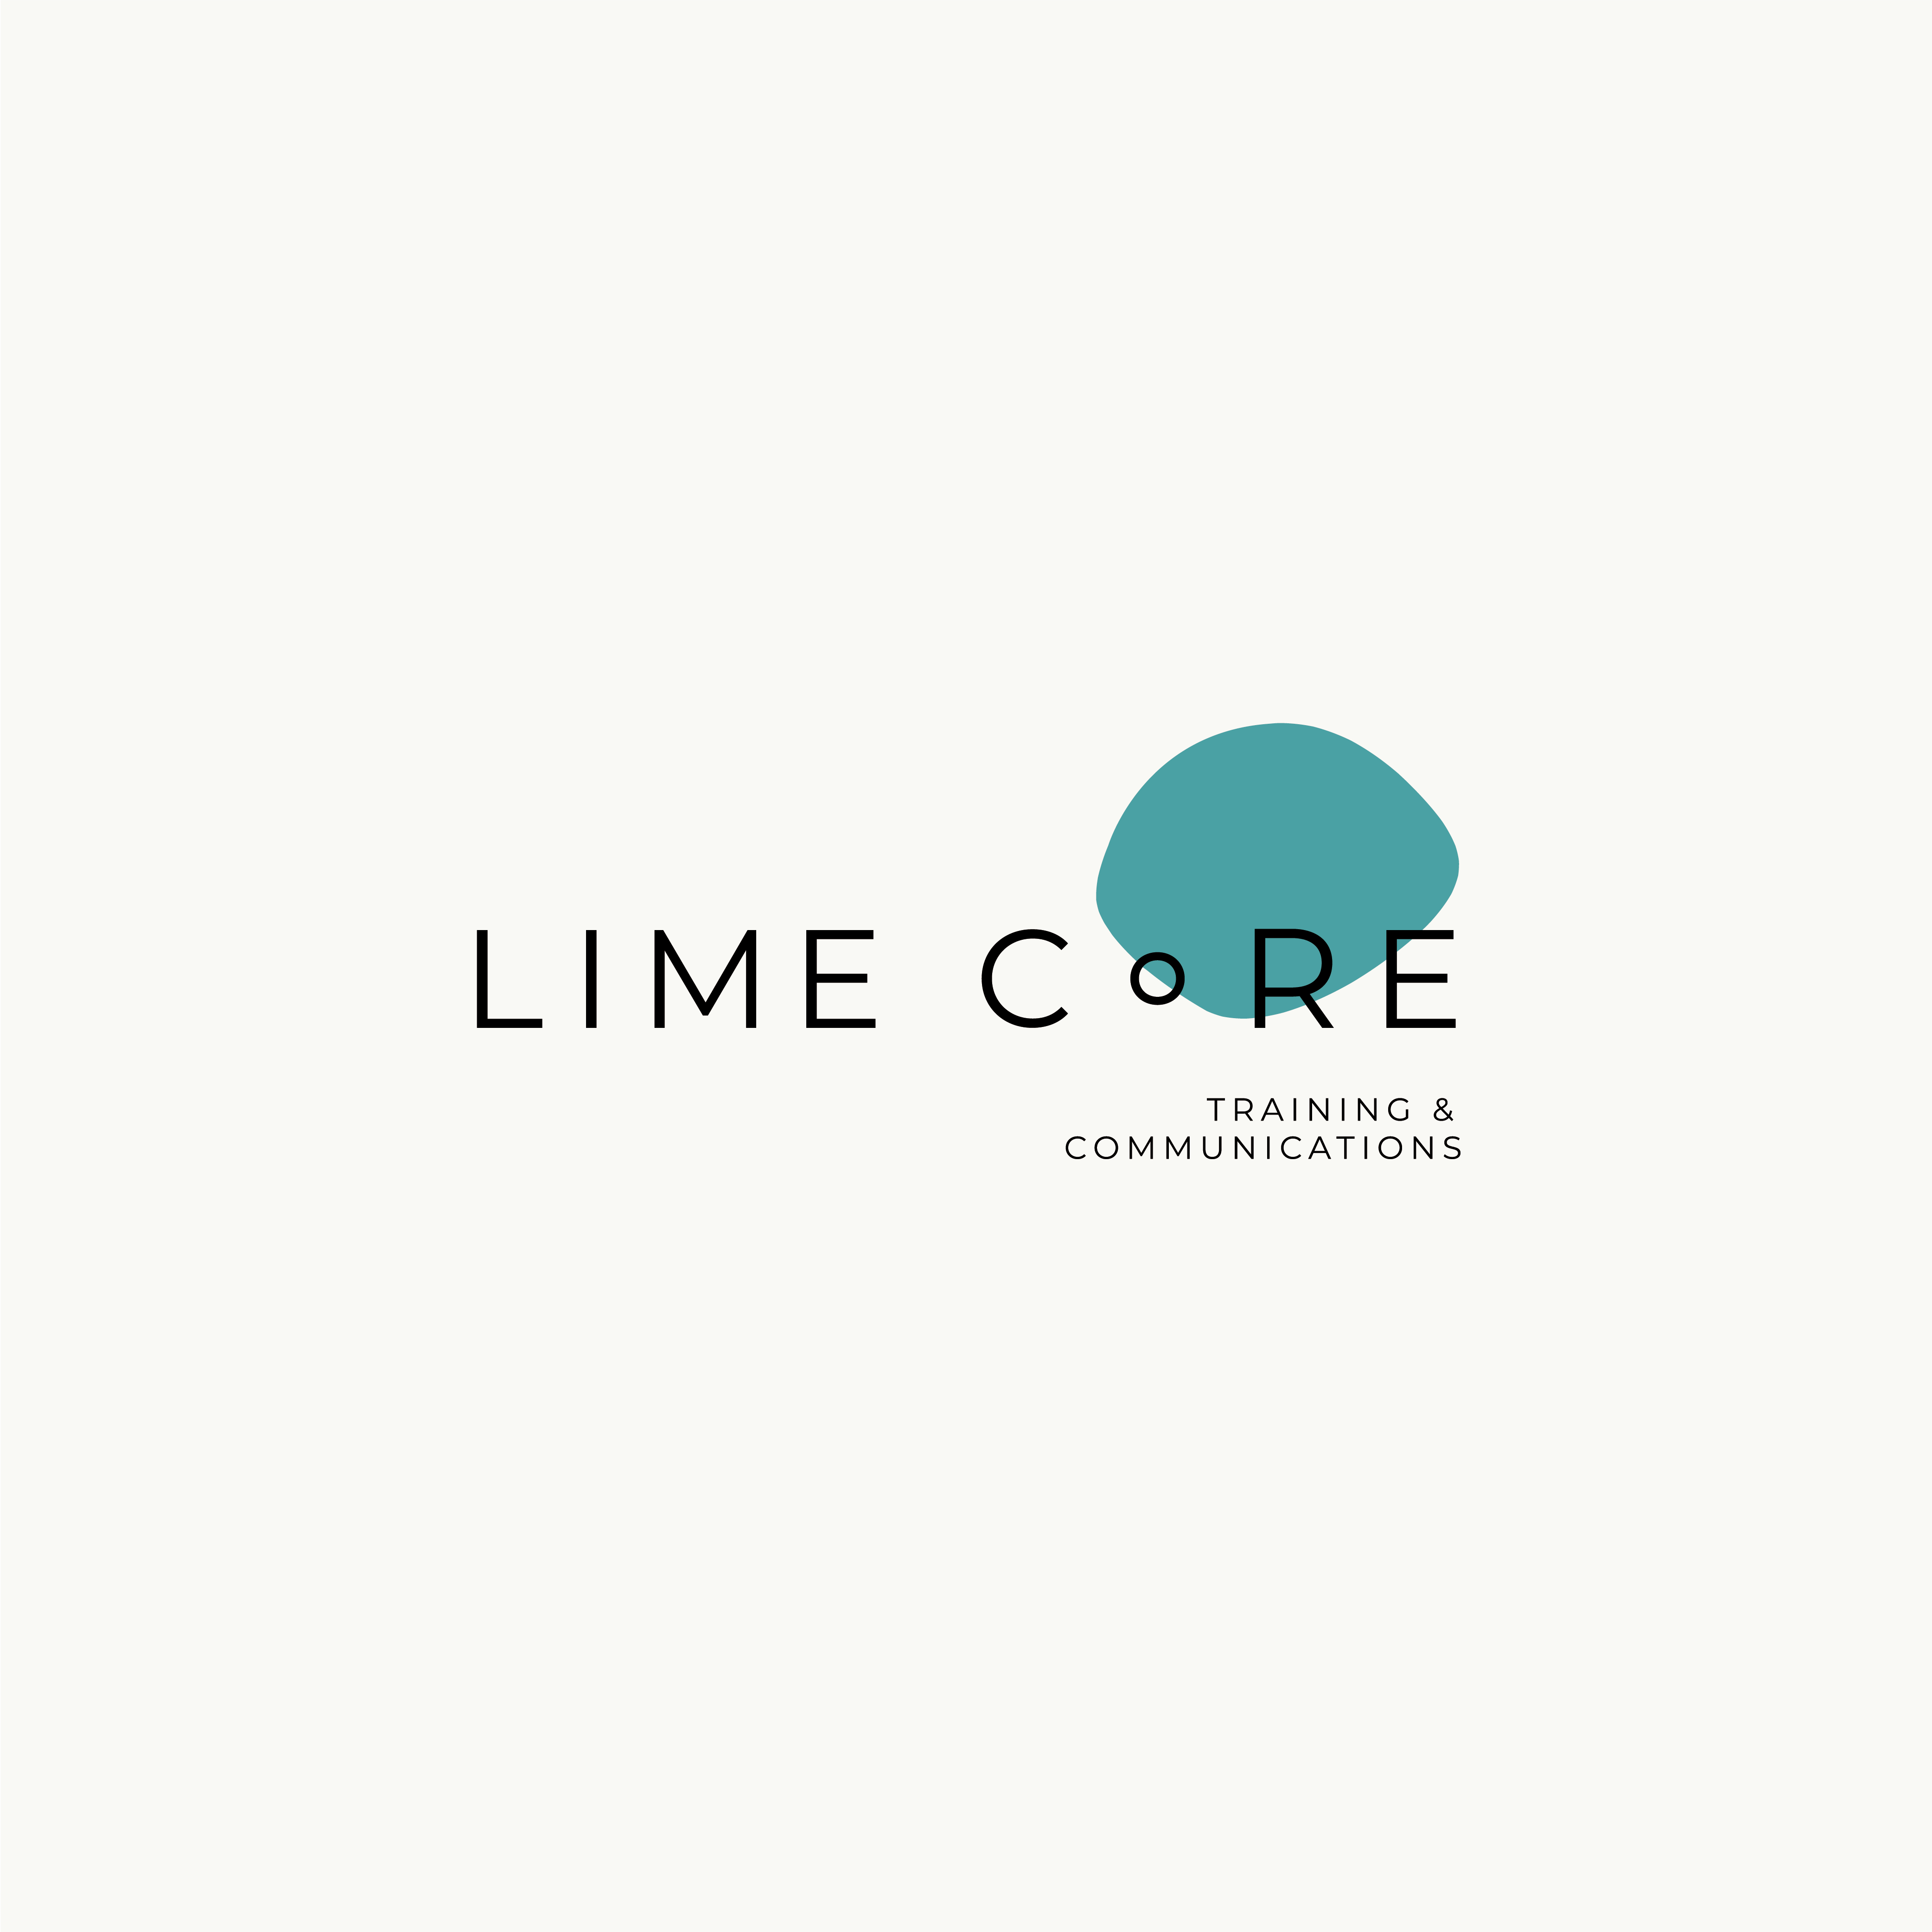 Classy but modern logo: for a disruptive company in Training & Communications